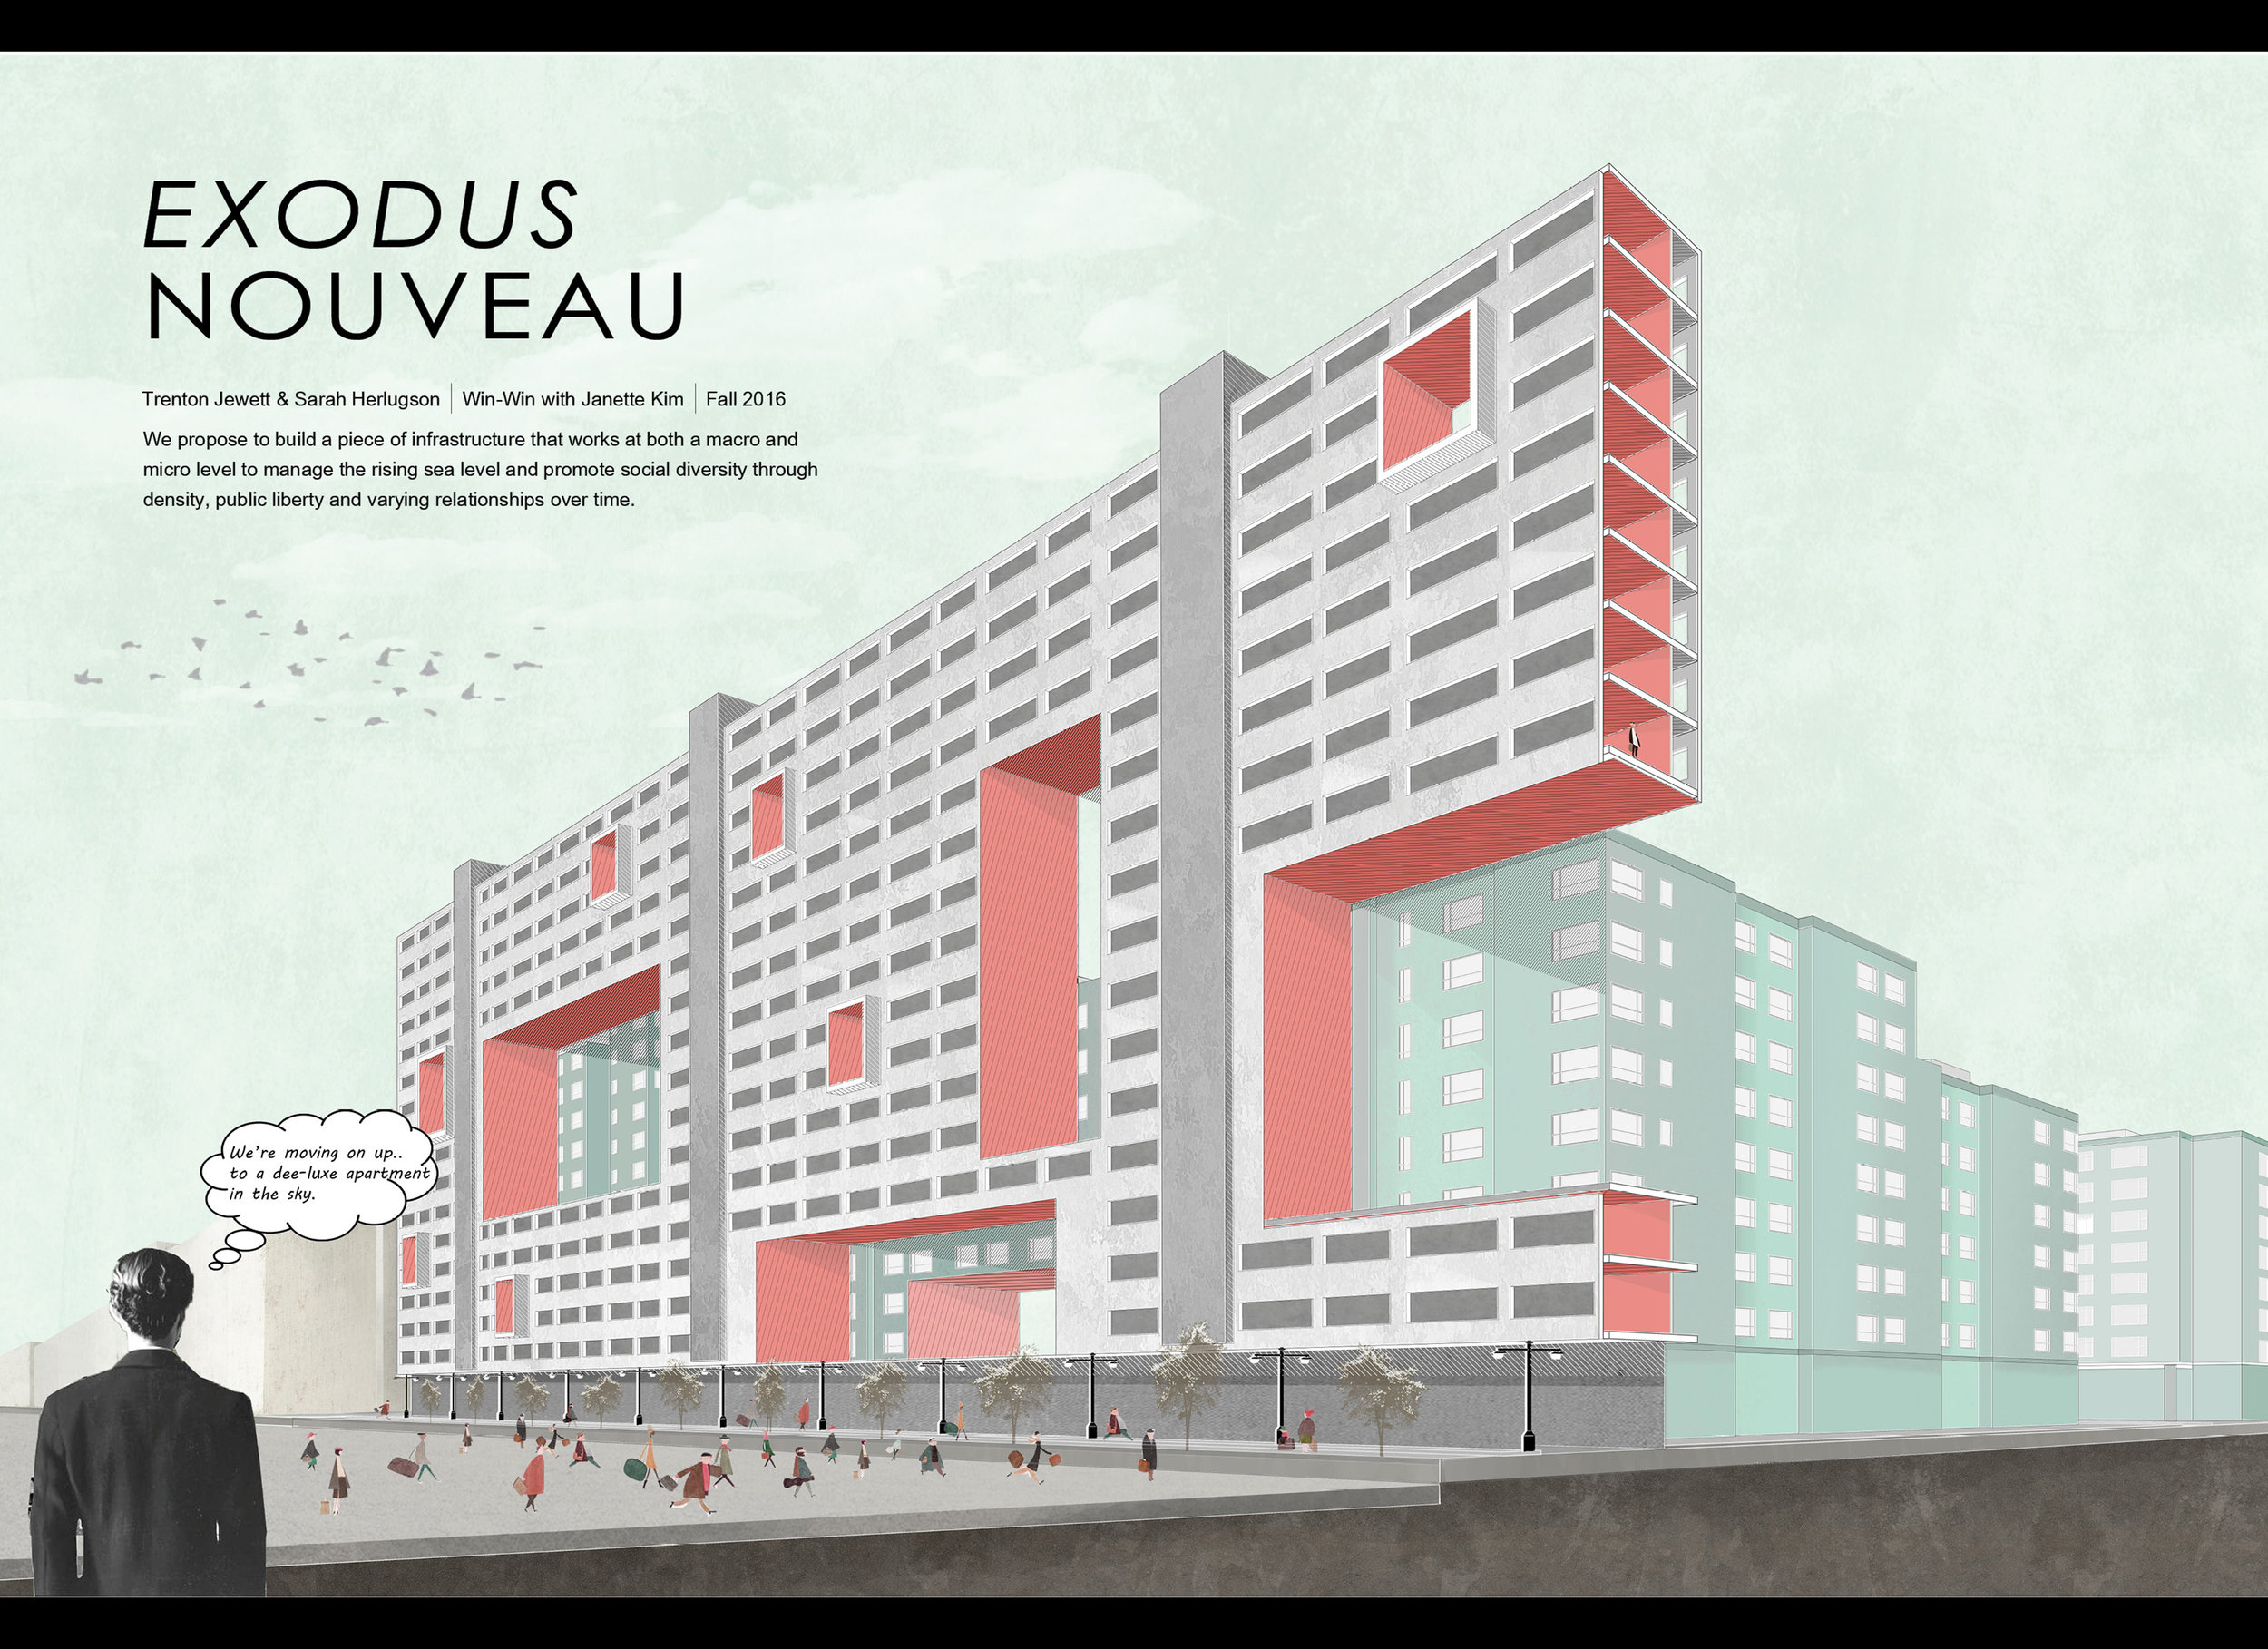 """""""Exodus Nouveau"""" proposal for Mission Bay by Sarah Herlugson and Trenton Jewett."""